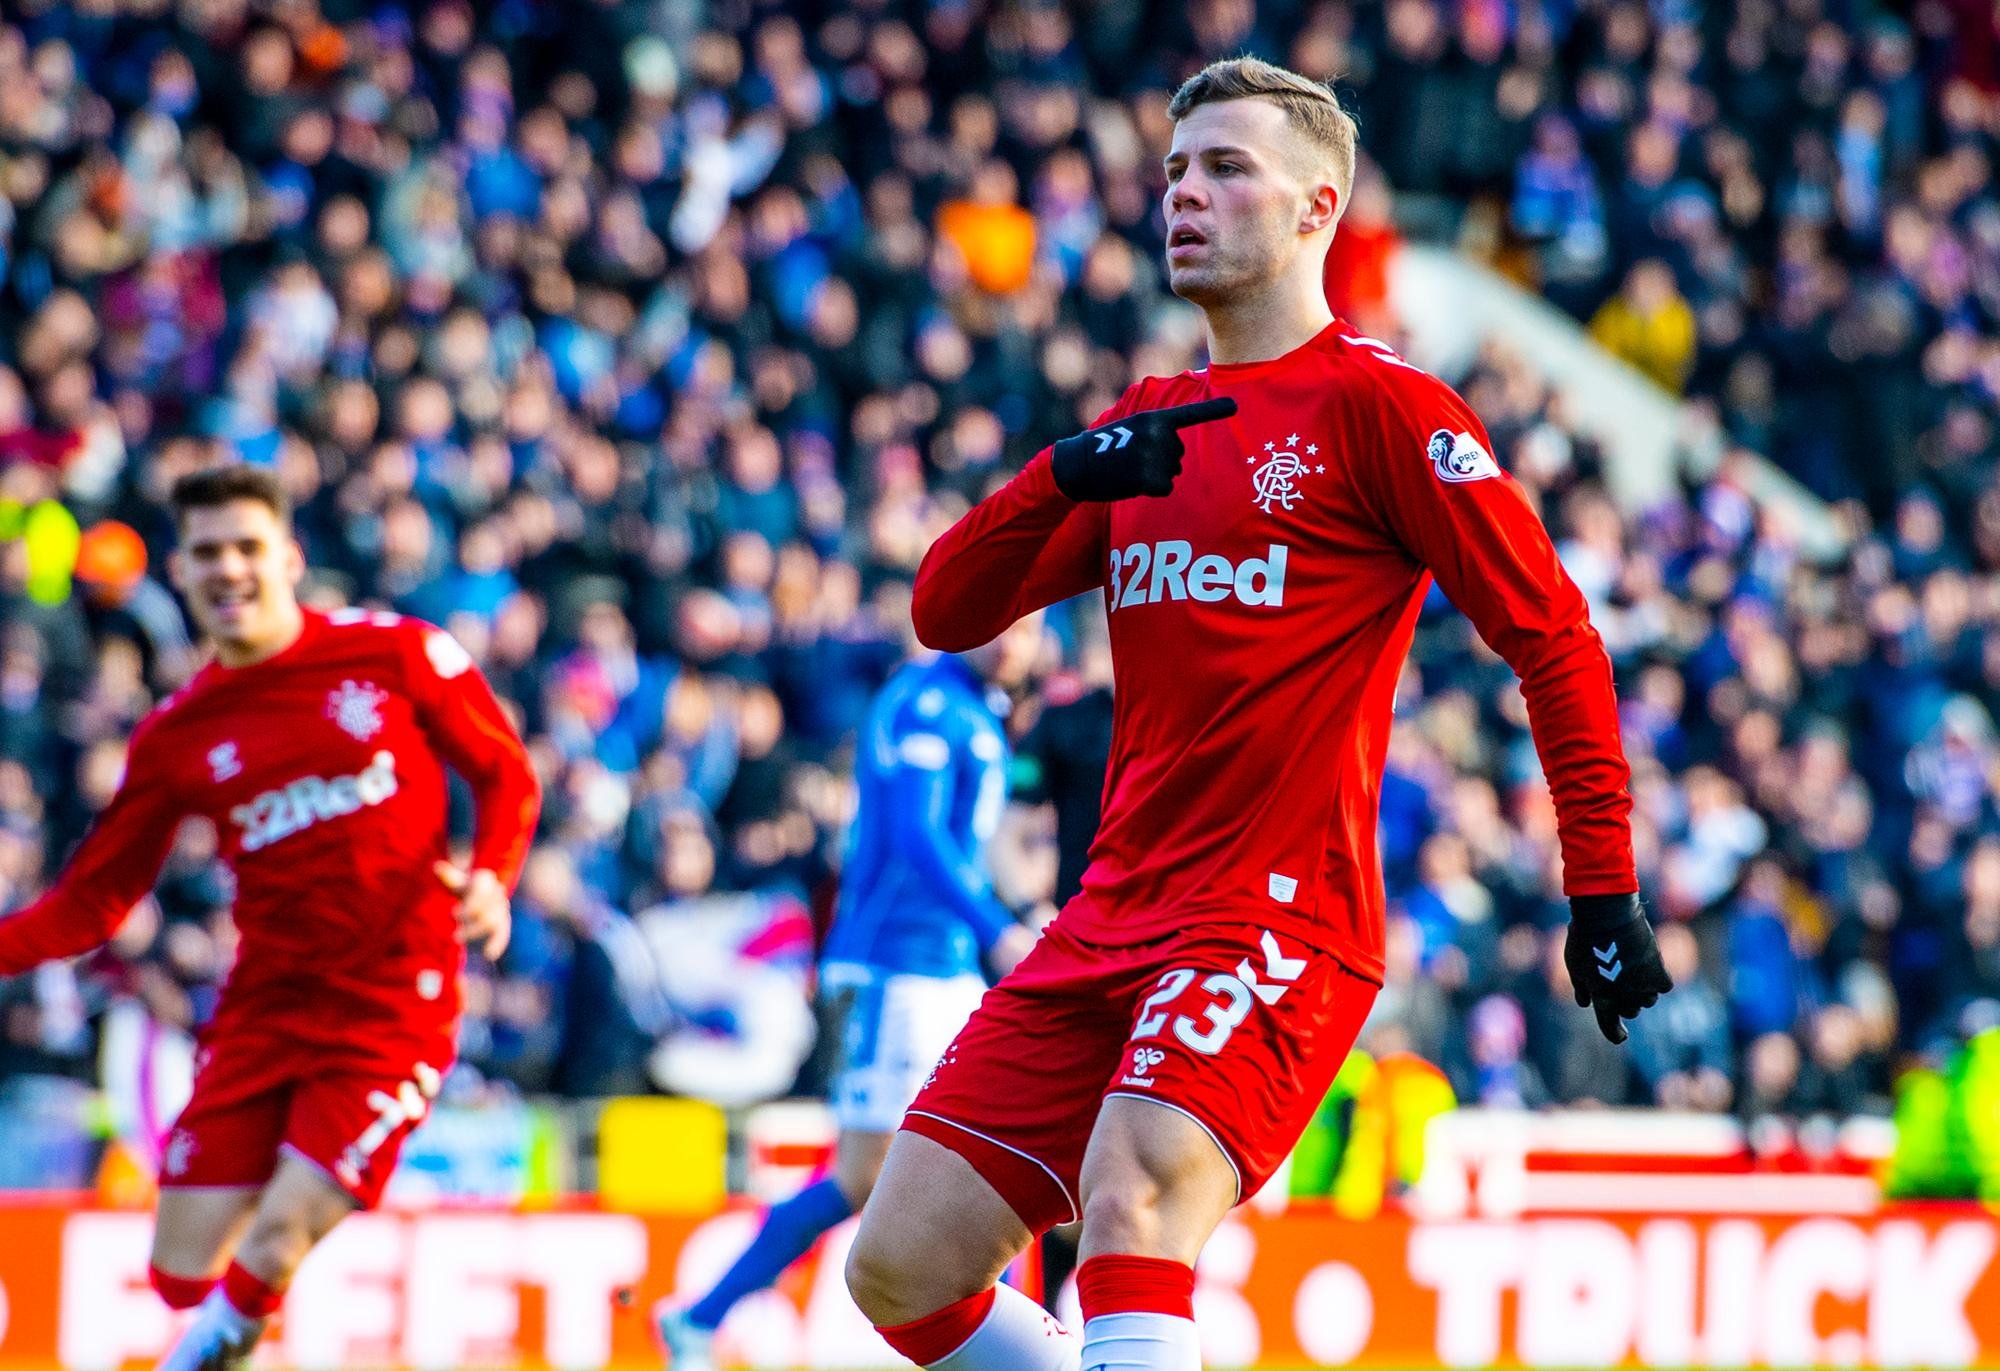 Rangers don't have option to buy Hibs striker Florian Kamberi, Greg Docherty deal update - reports